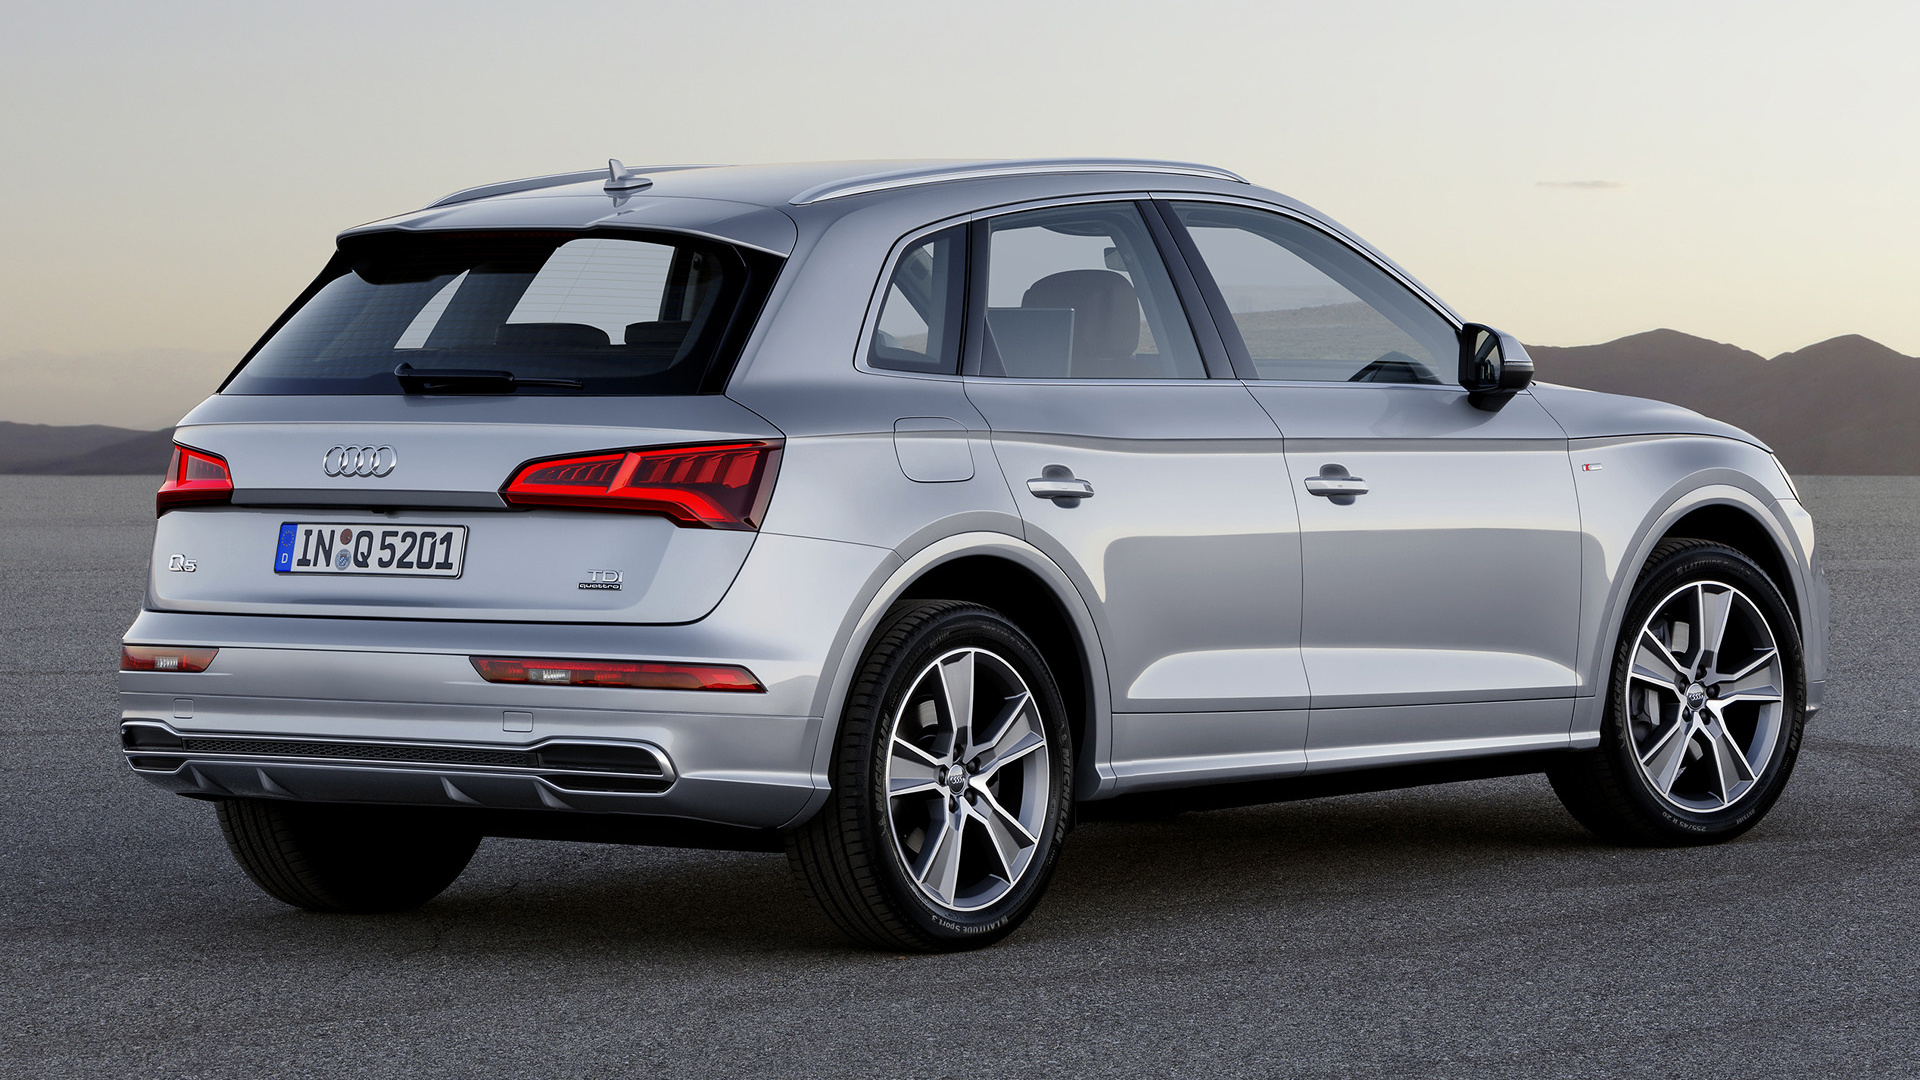 audi q5 s line 2017 wallpapers and hd images car pixel. Black Bedroom Furniture Sets. Home Design Ideas